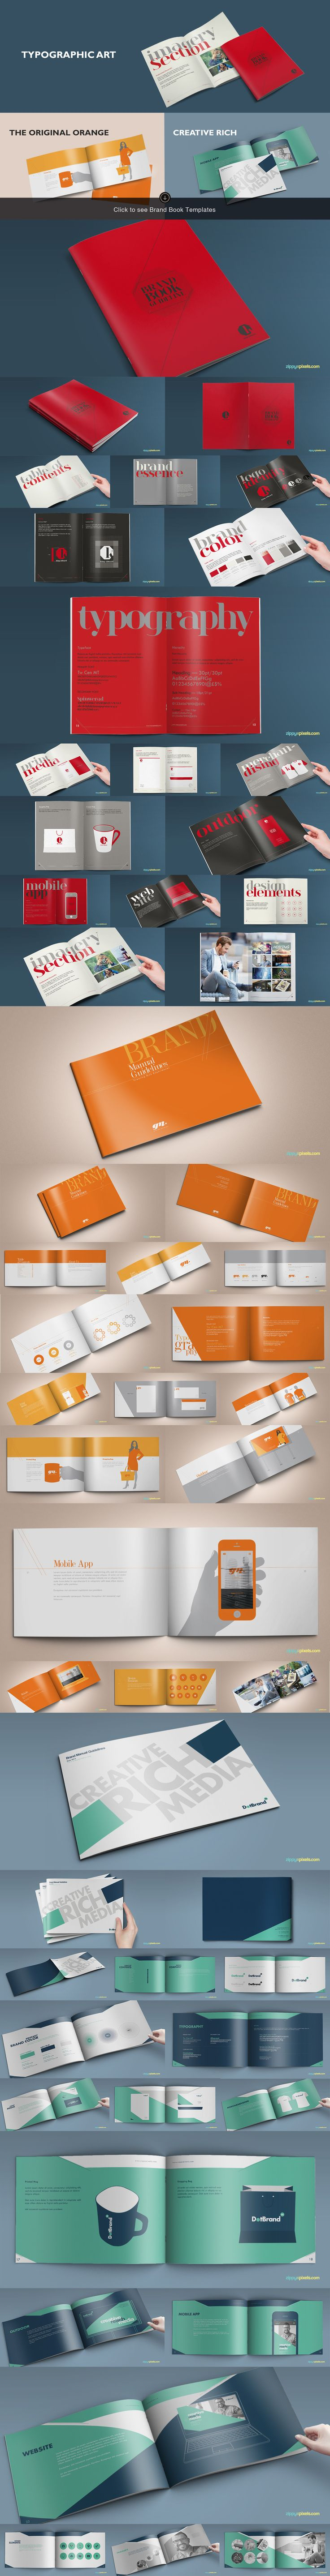 15 Brand Guidelines Templates Bundle by ZippyPixels on @creativemarket